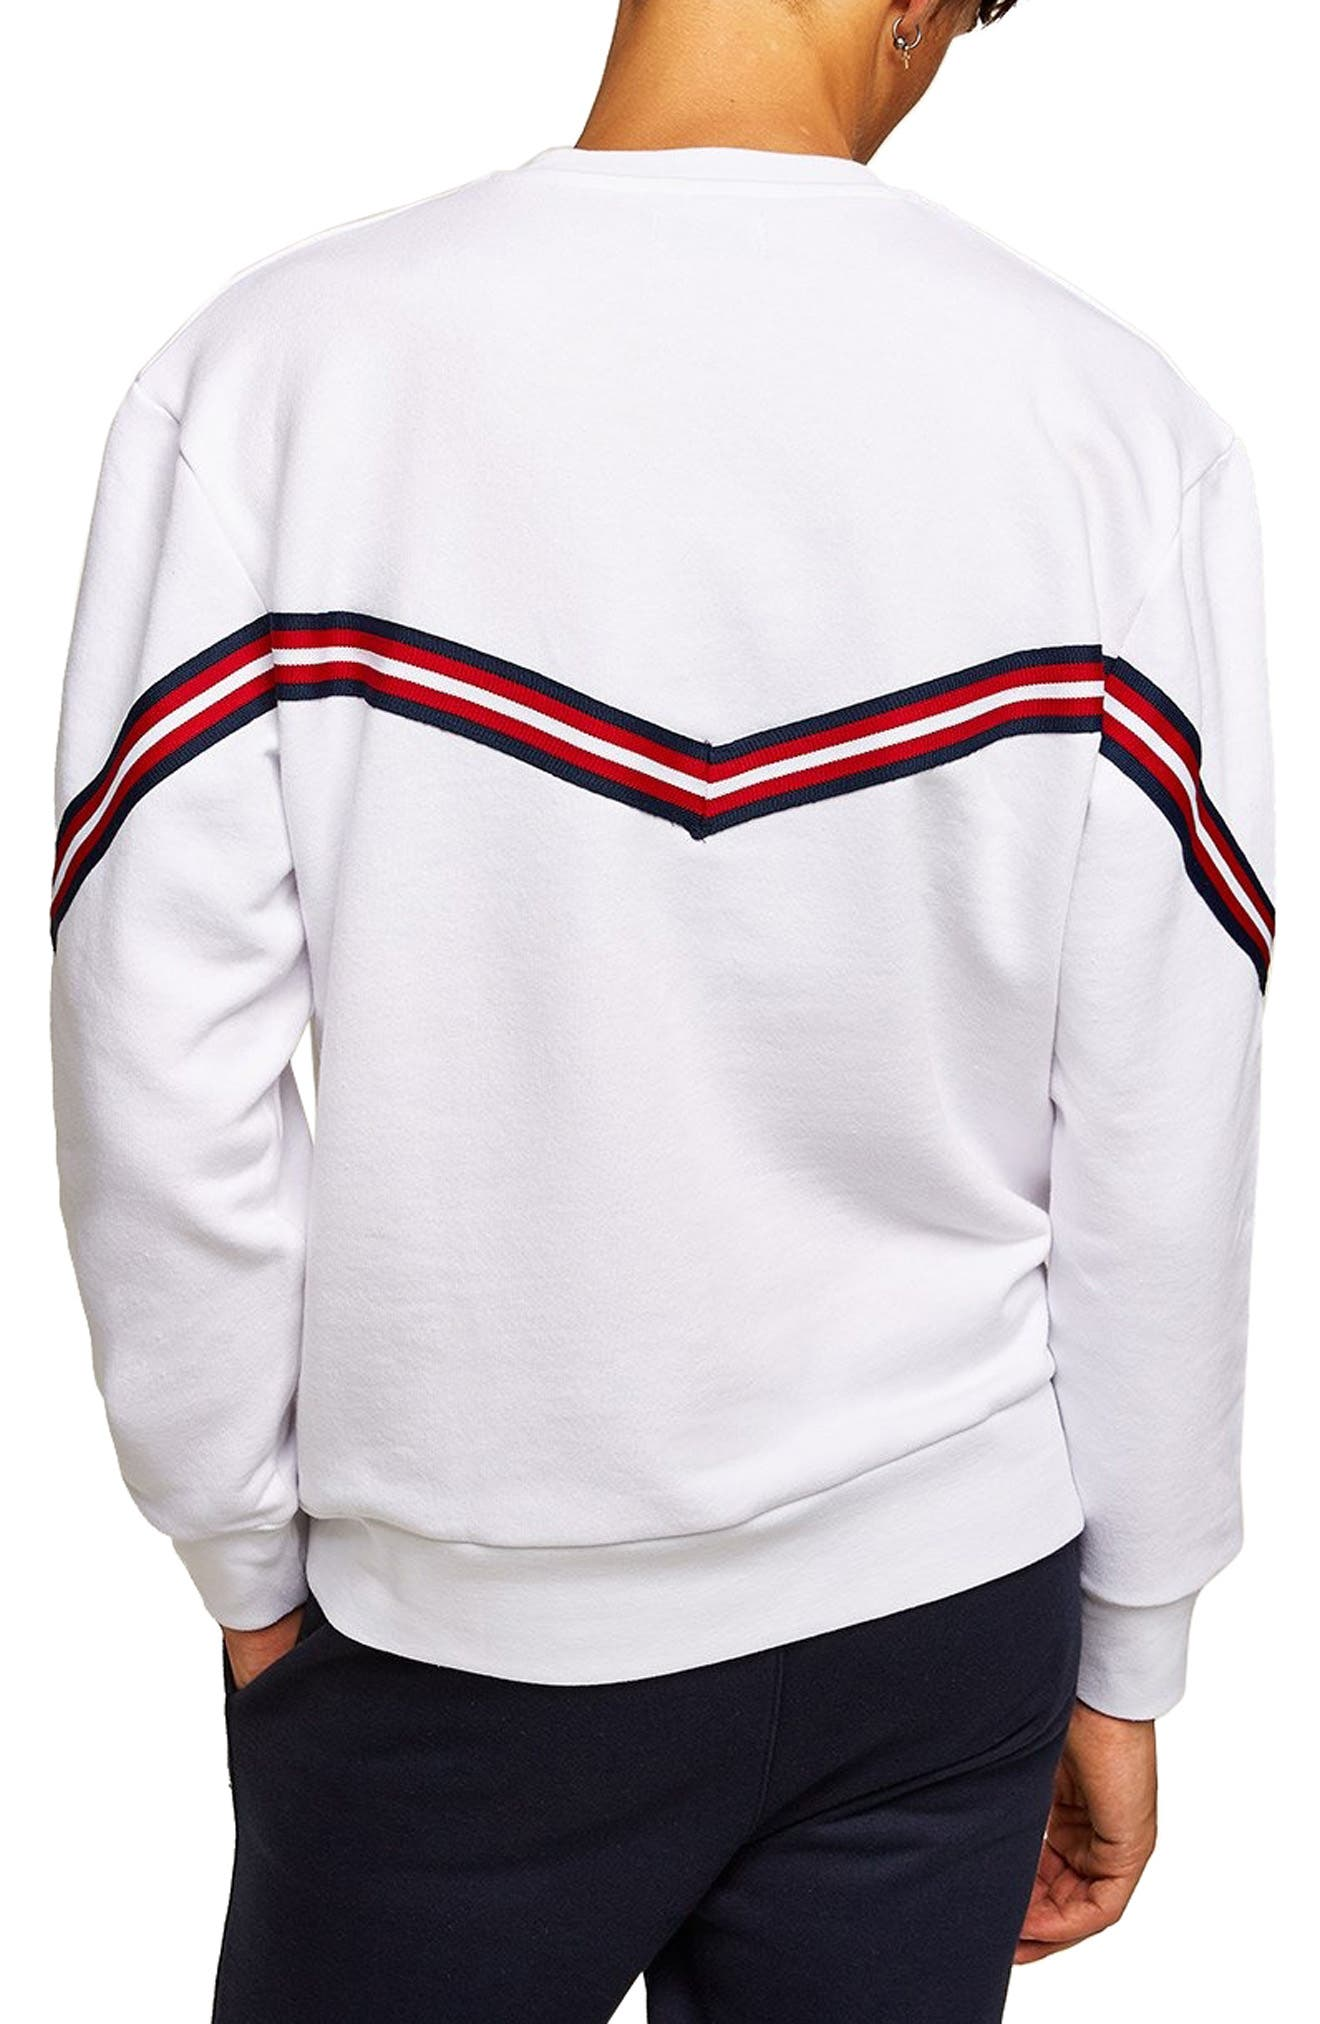 Chevron Tape Sweatshirt,                             Alternate thumbnail 2, color,                             WHITE MULTI